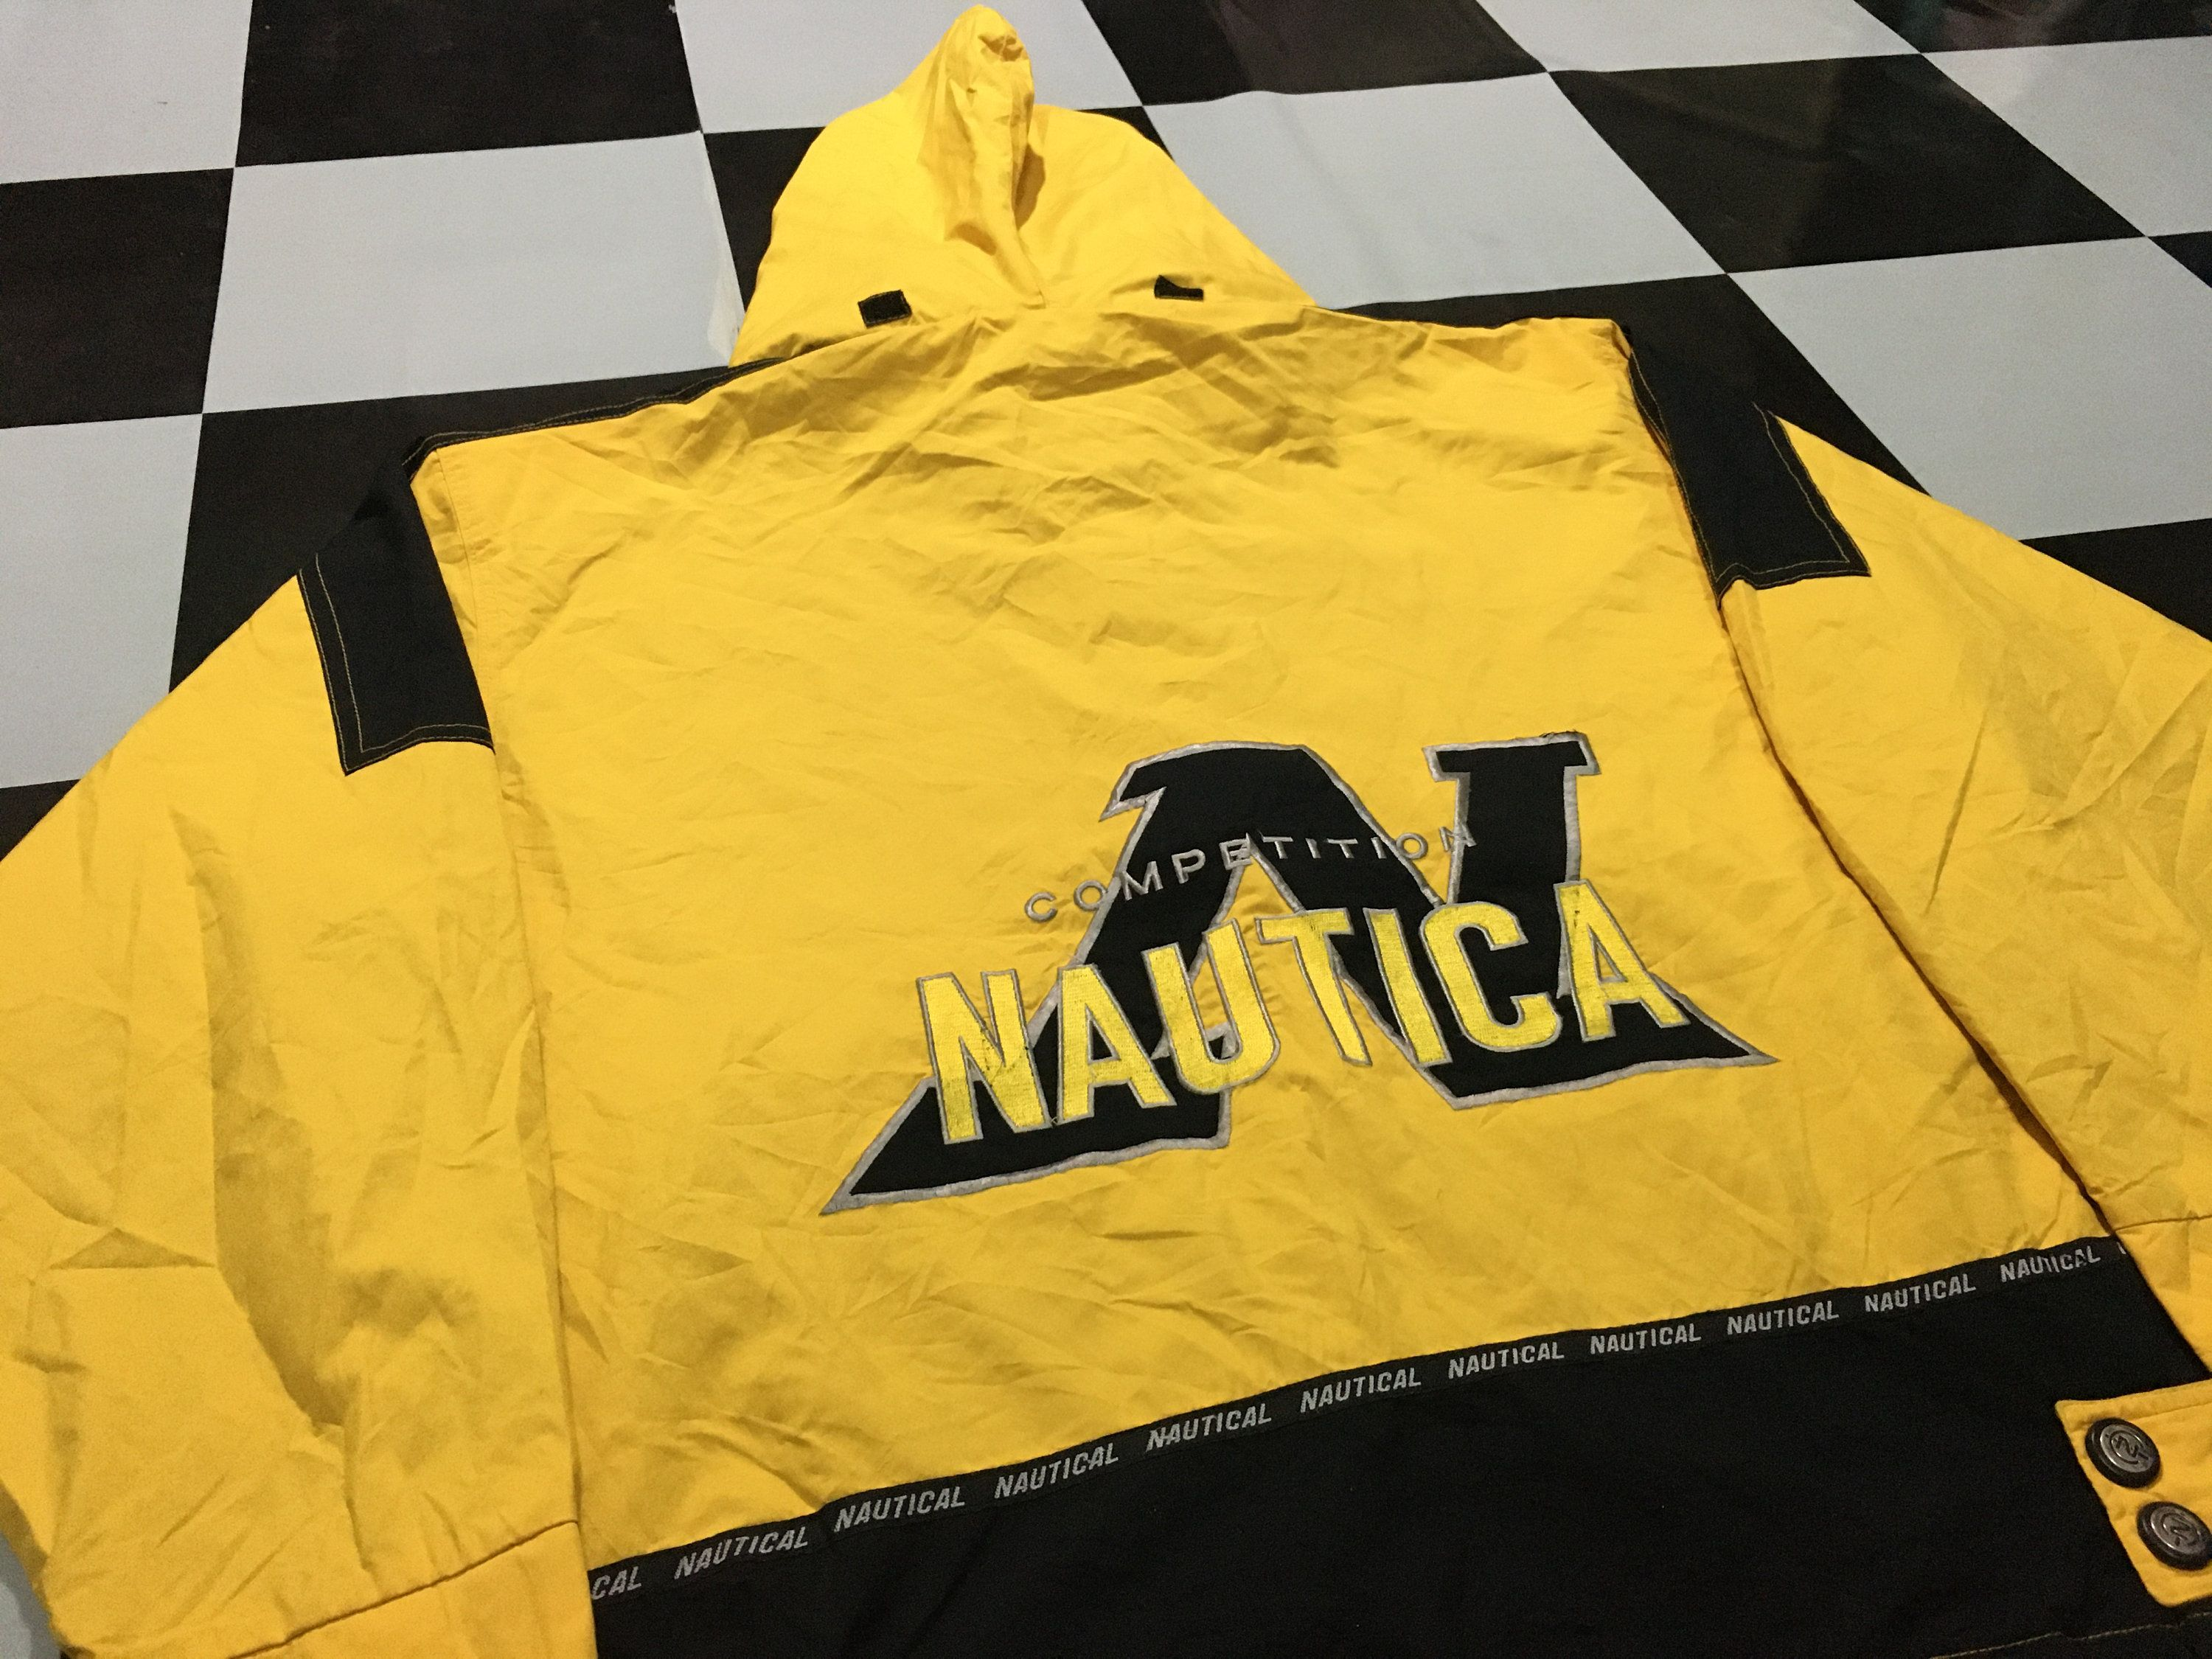 Vintage Nautica Competition Jacket Windbreaker Big Logo Color Block Two Tone Yellow Black Size L By Alivevintageshop On Etsy In 2020 Logo Color Nautica Windbreaker